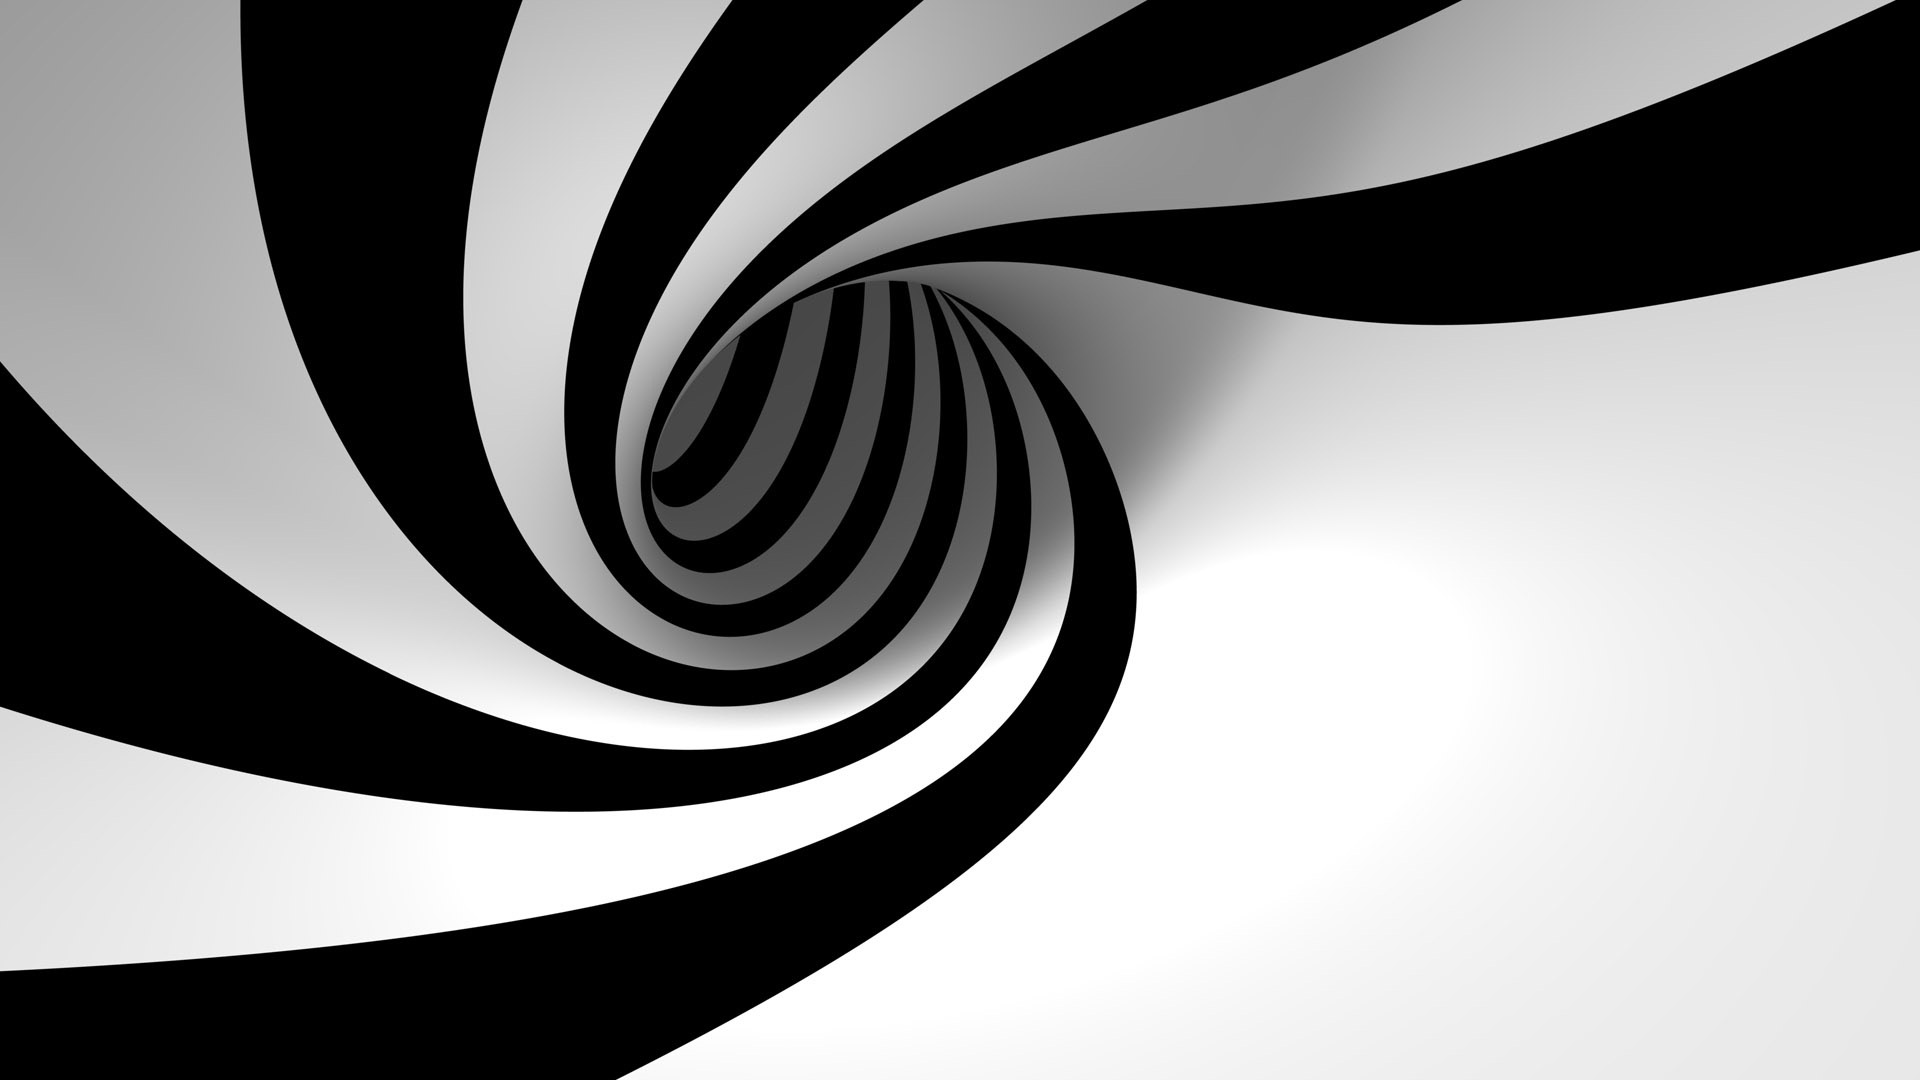 Black and white 3d wallpaper 32 background wallpaper for Black and white 3d wallpaper